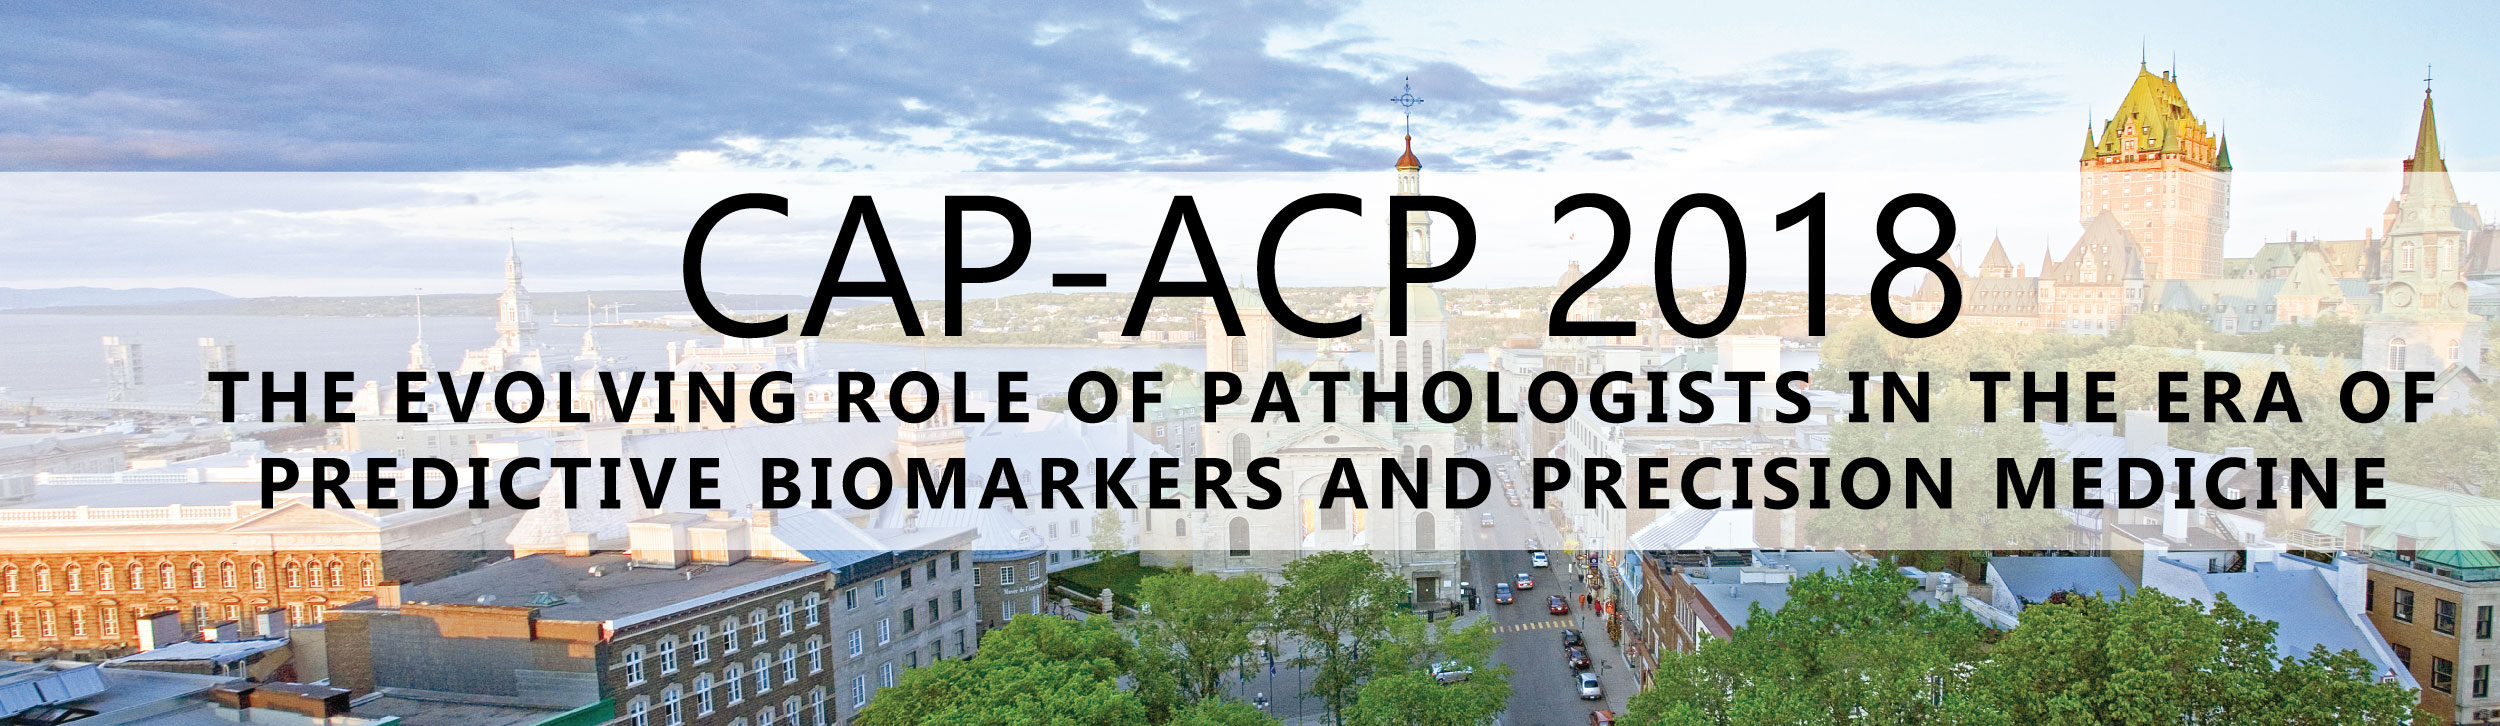 CAP-ACP 2018 Annual Meeting Held Jointly With APQ